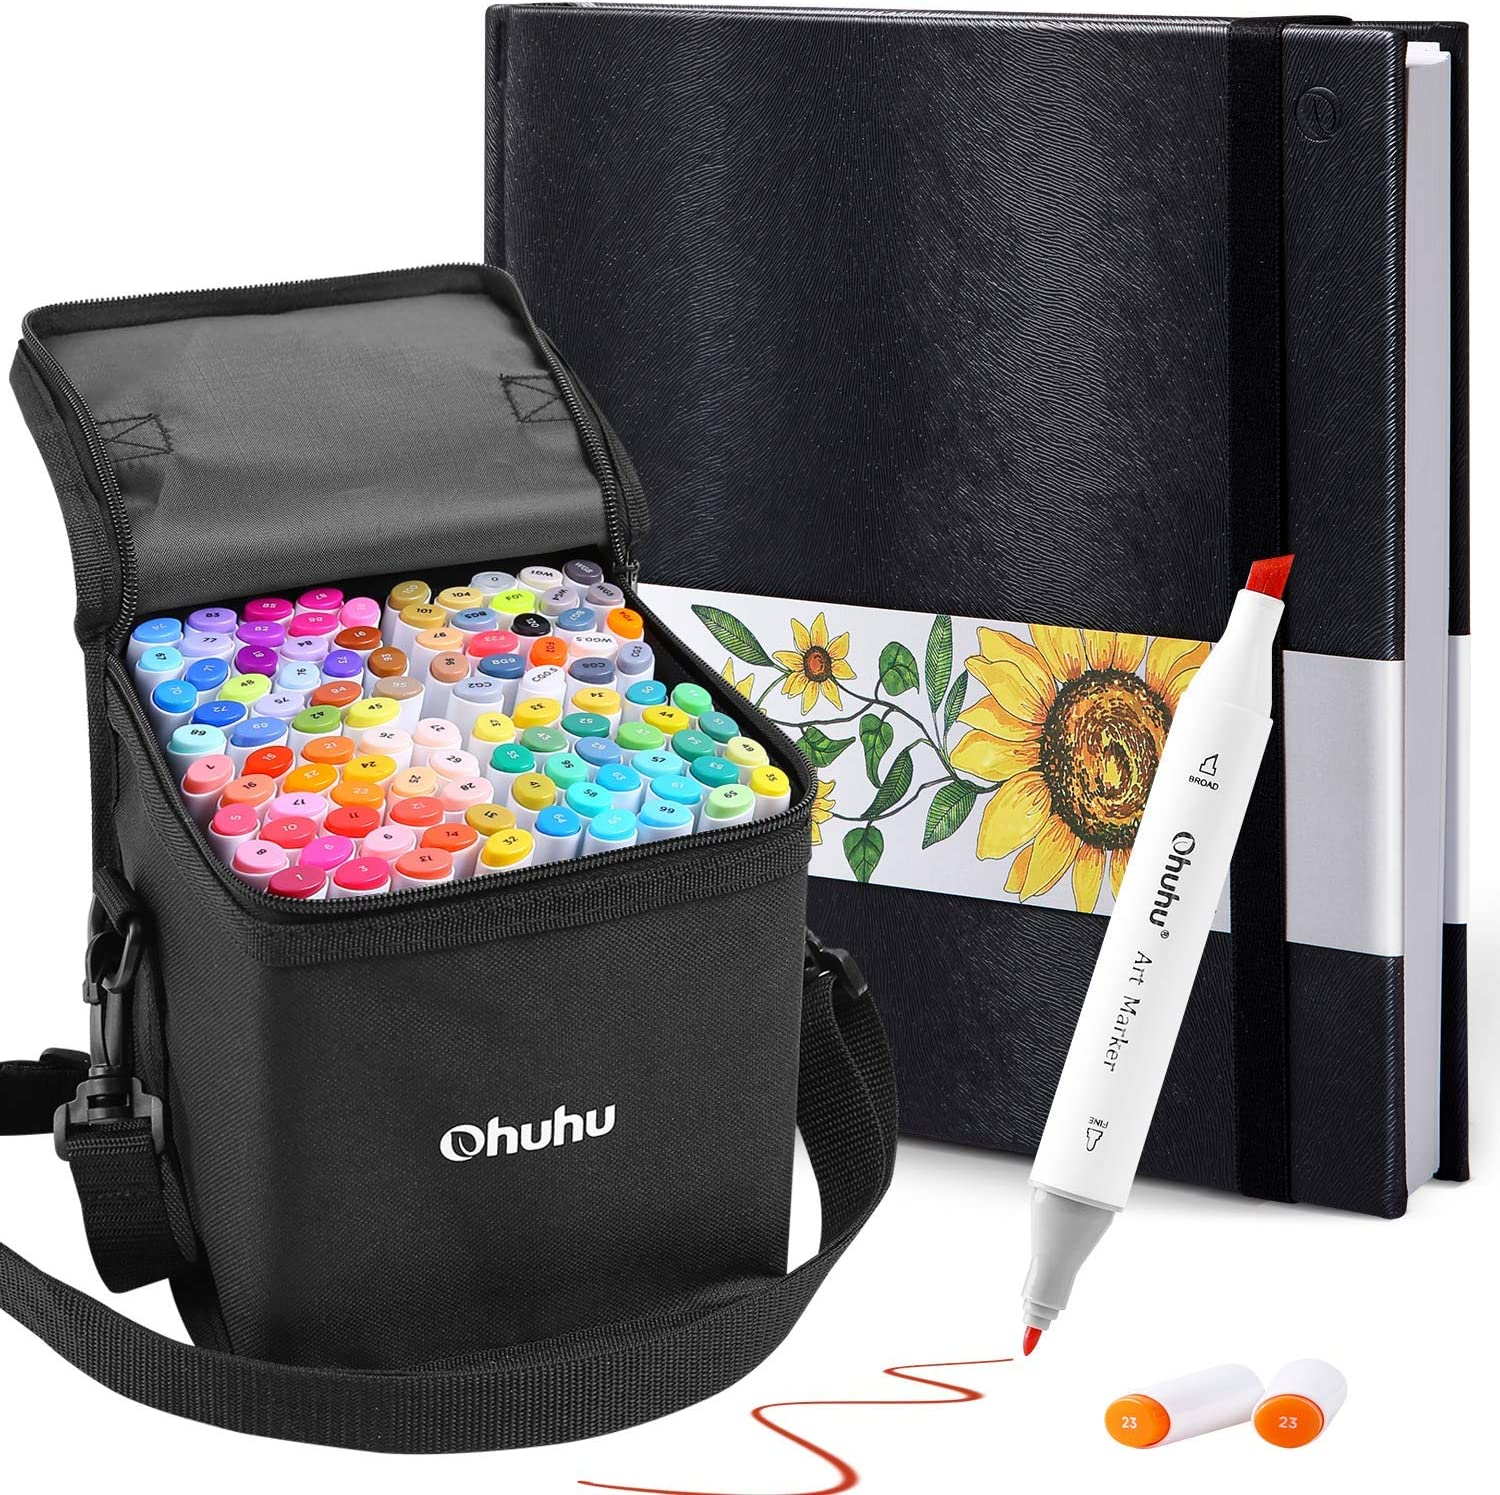 """Ohuhu 100 Colors Alcohol Art Markers (Fine & Chisel, Bonus 1 Colorless Blender) + 8.3"""" ×8.3"""" Marker Pads Art Sketchbook, 120LB/200GSM Heavy Smooth Drawing Papers, 78 Sheets/156 Pages"""